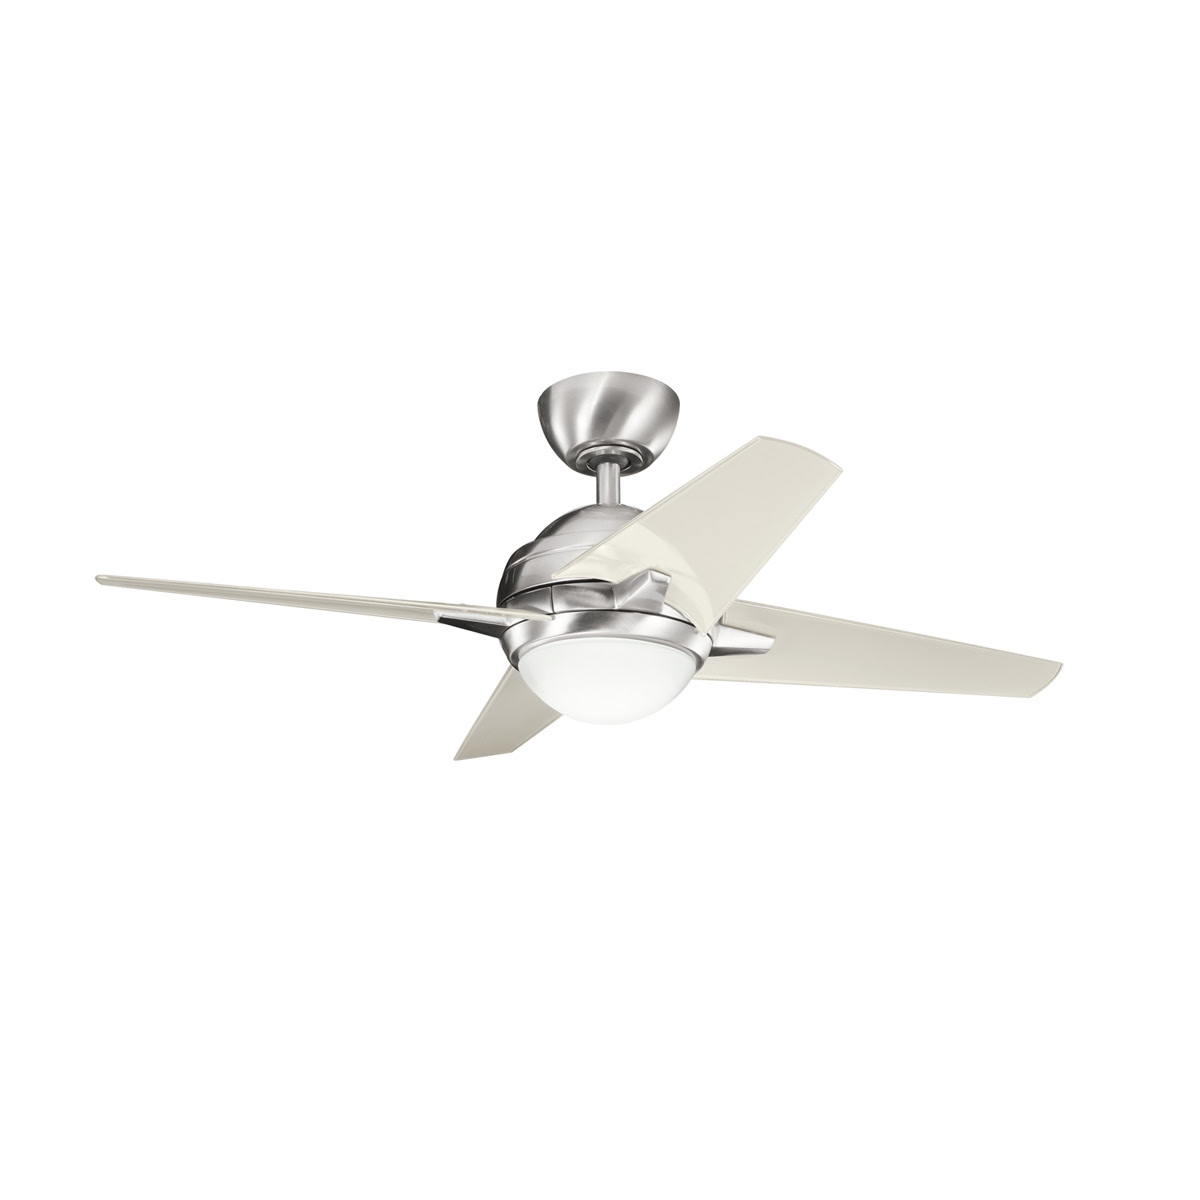 Hunter Hr21230 42inch White Ceiling Fan With Light Fan Light And Light Kit Included Ceiling